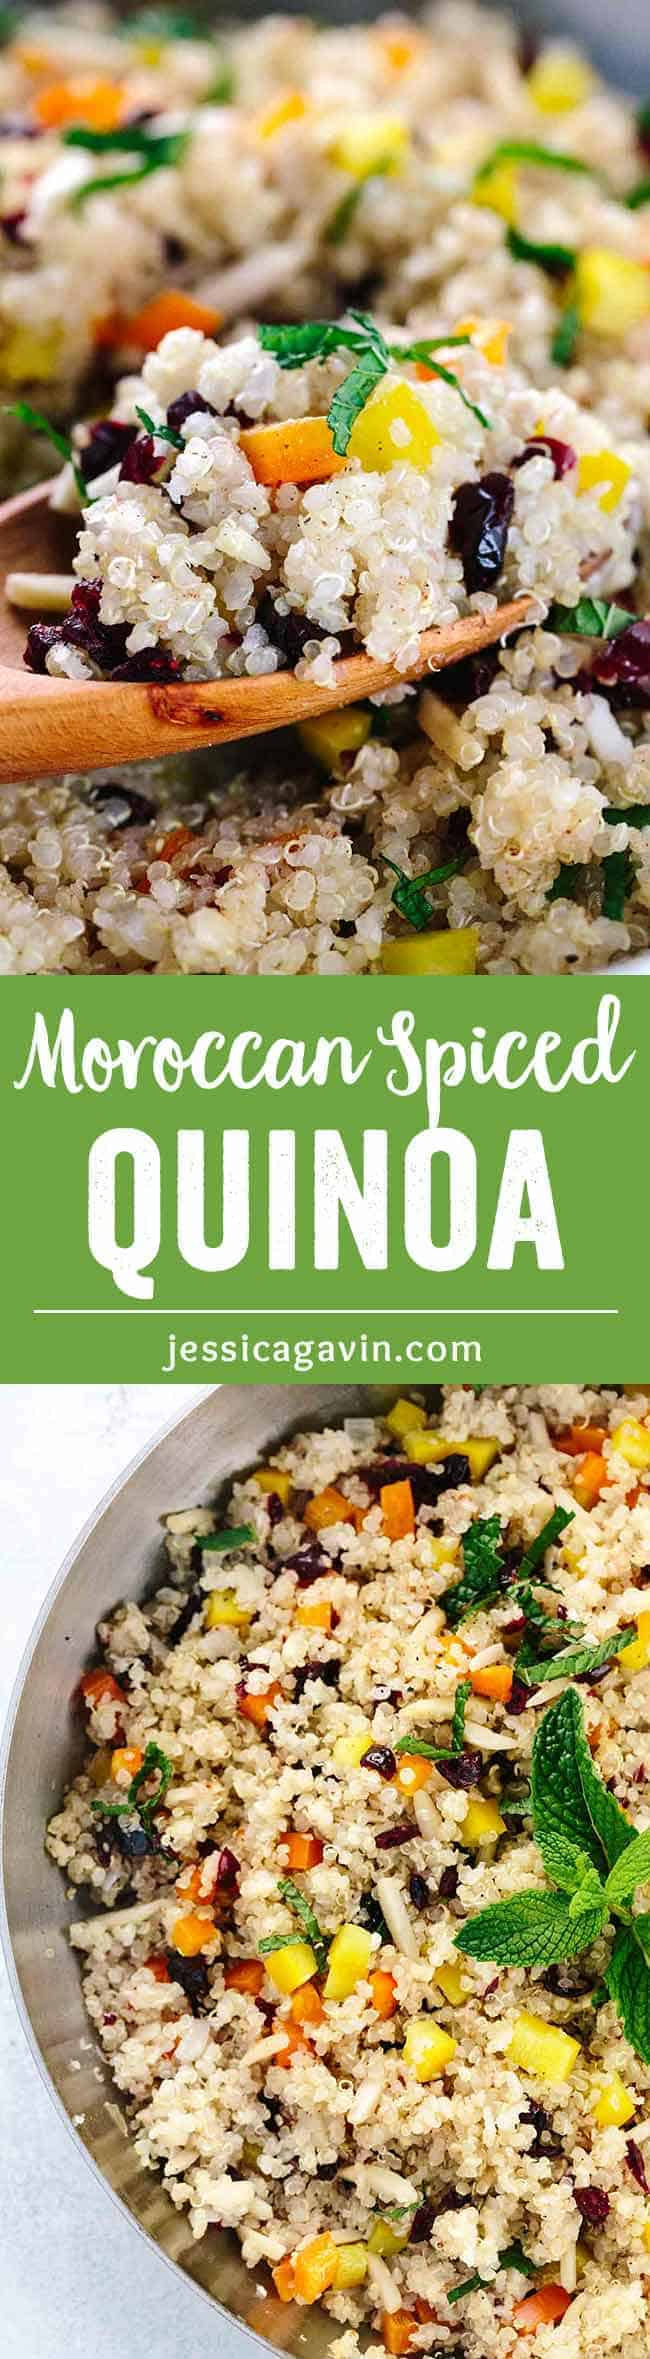 Moroccan Spiced Cranberry Almond Quinoa - A healthy side dish, that is quick and easy to prepare and packed with flavor! Cinnamon, mint, garlic, peppers and crunchy almonds add an exotic twist to a protein-rich quinoa.